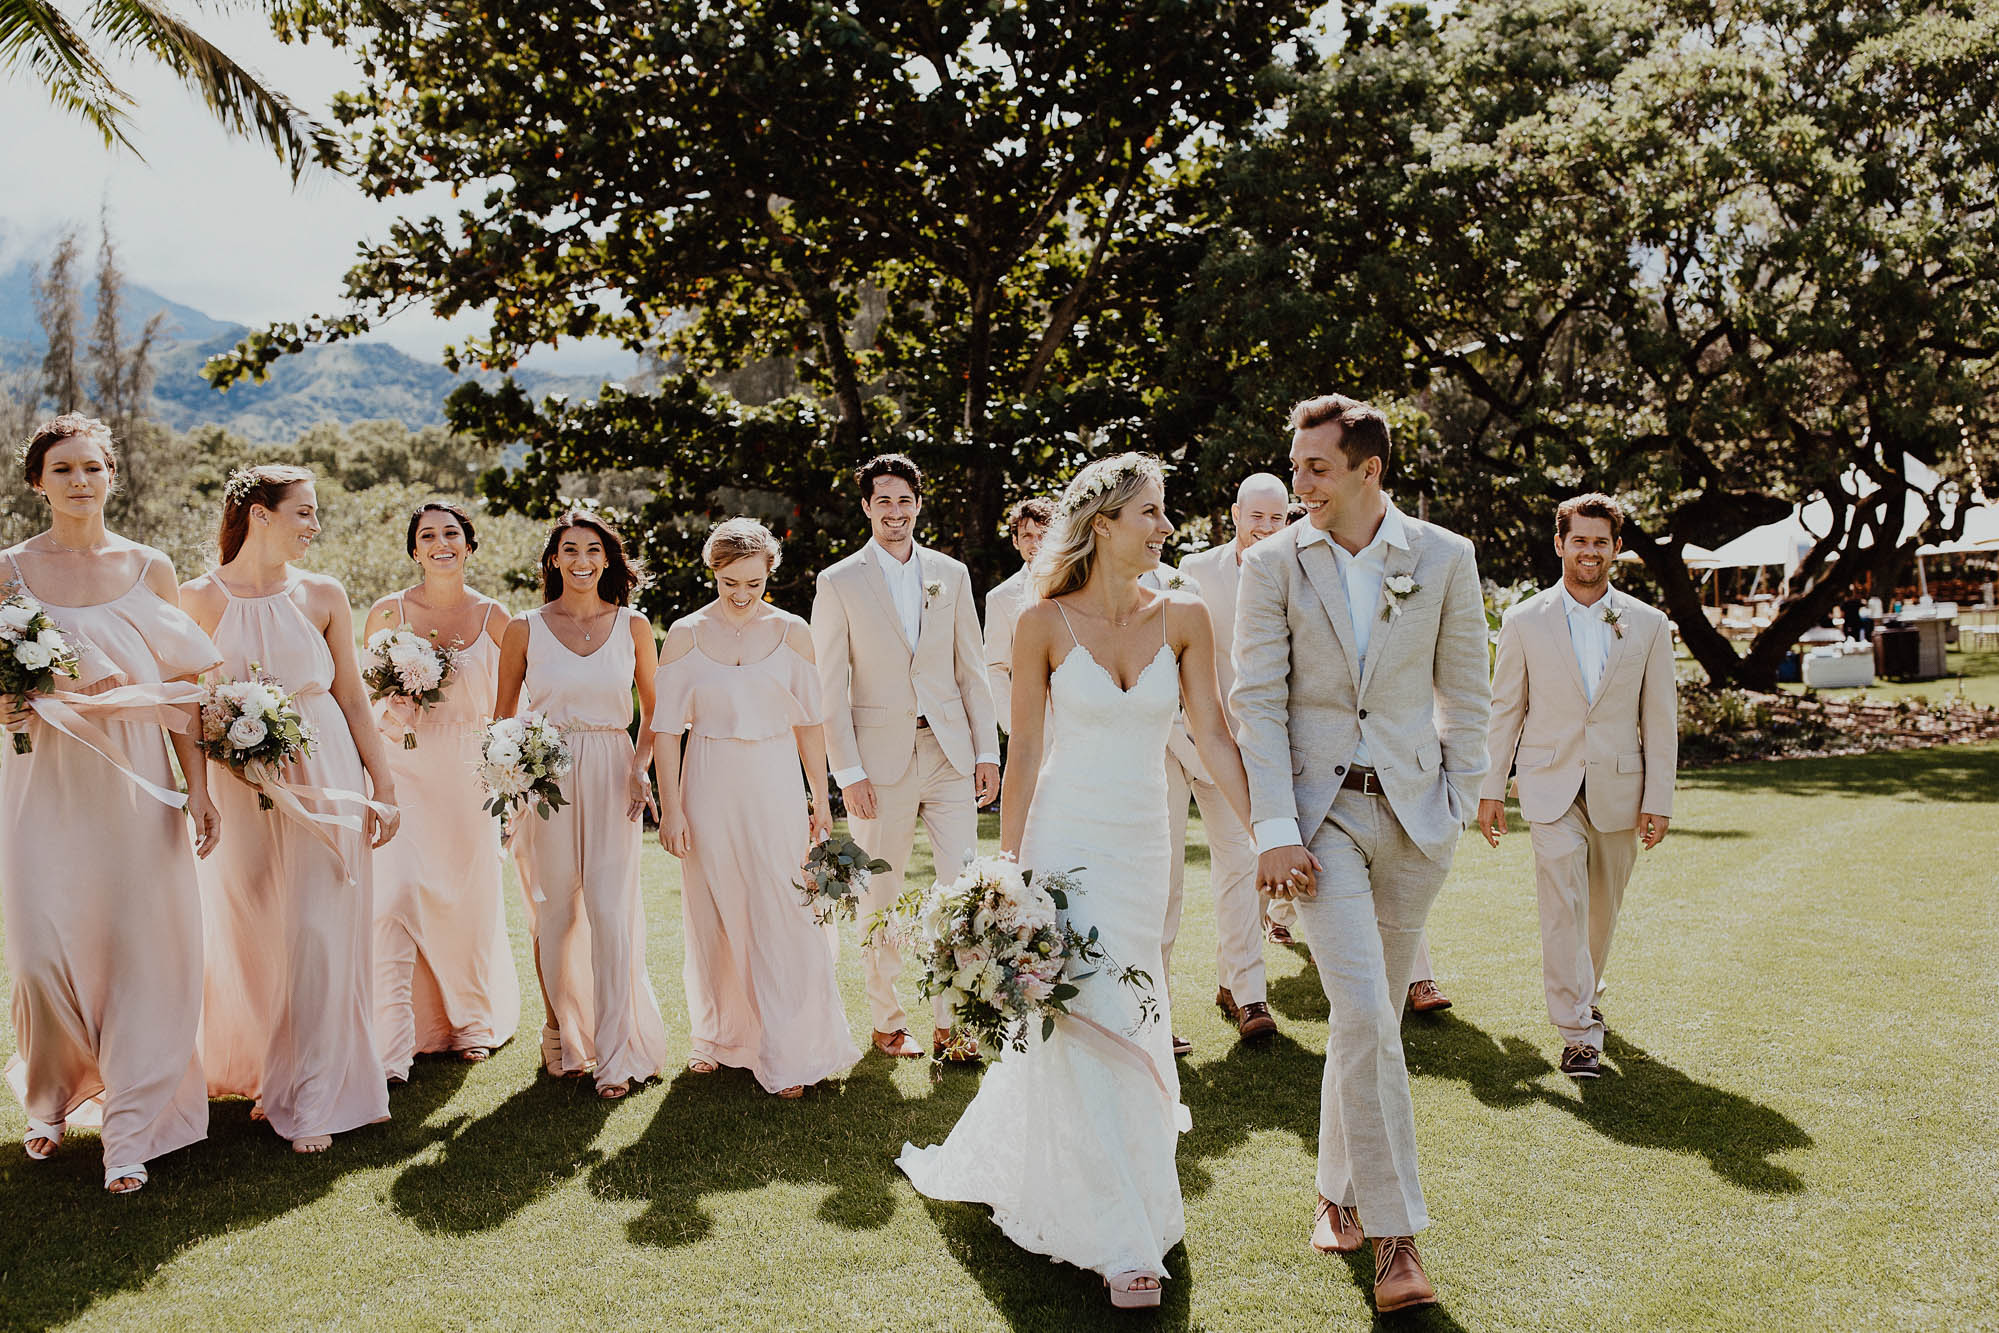 Walking with our wedding party north shore kauai hawaii wedding day